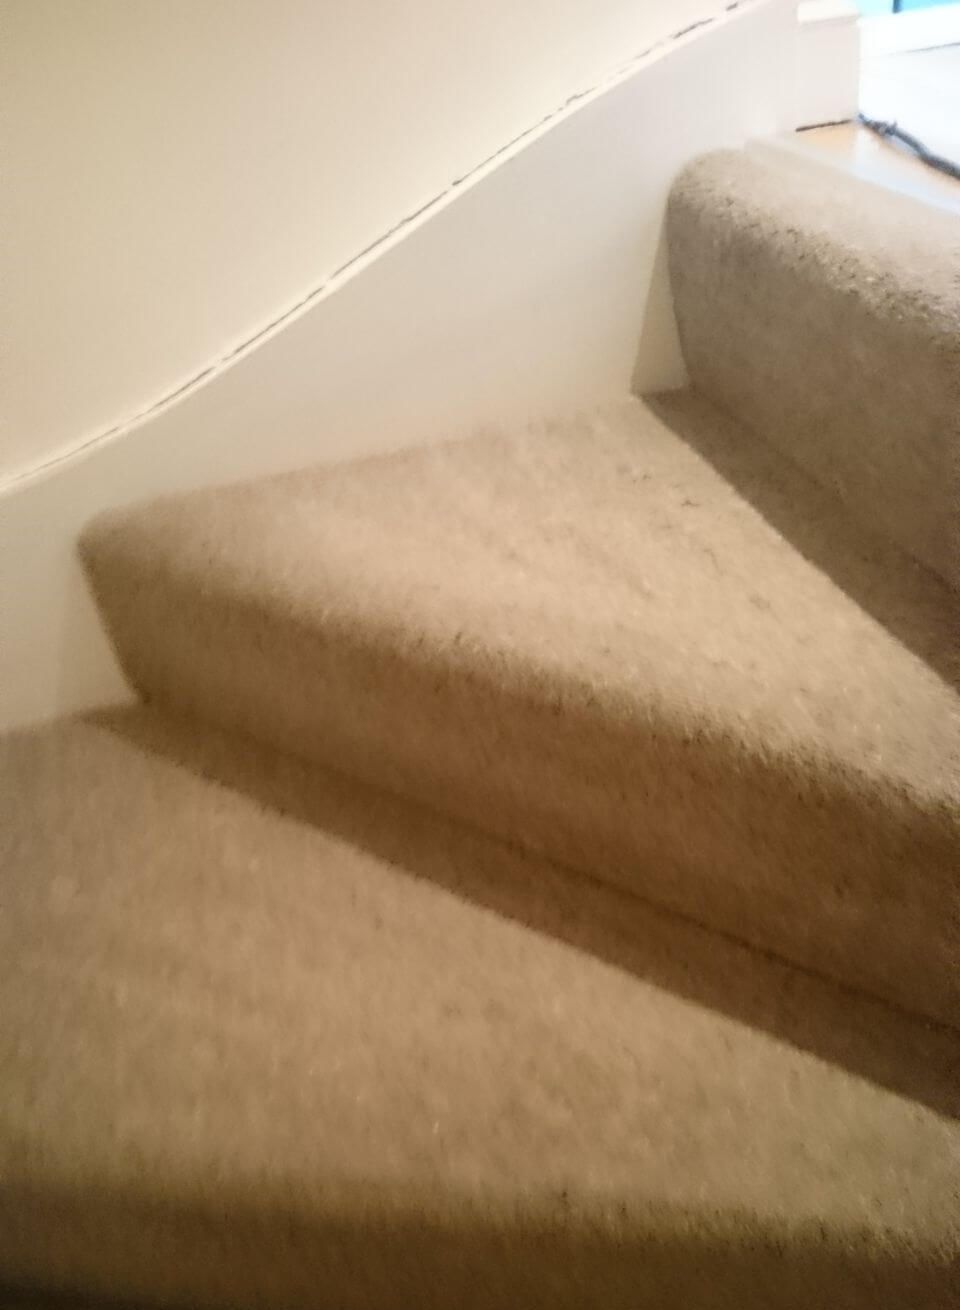 cleaning a carpet stain Slough